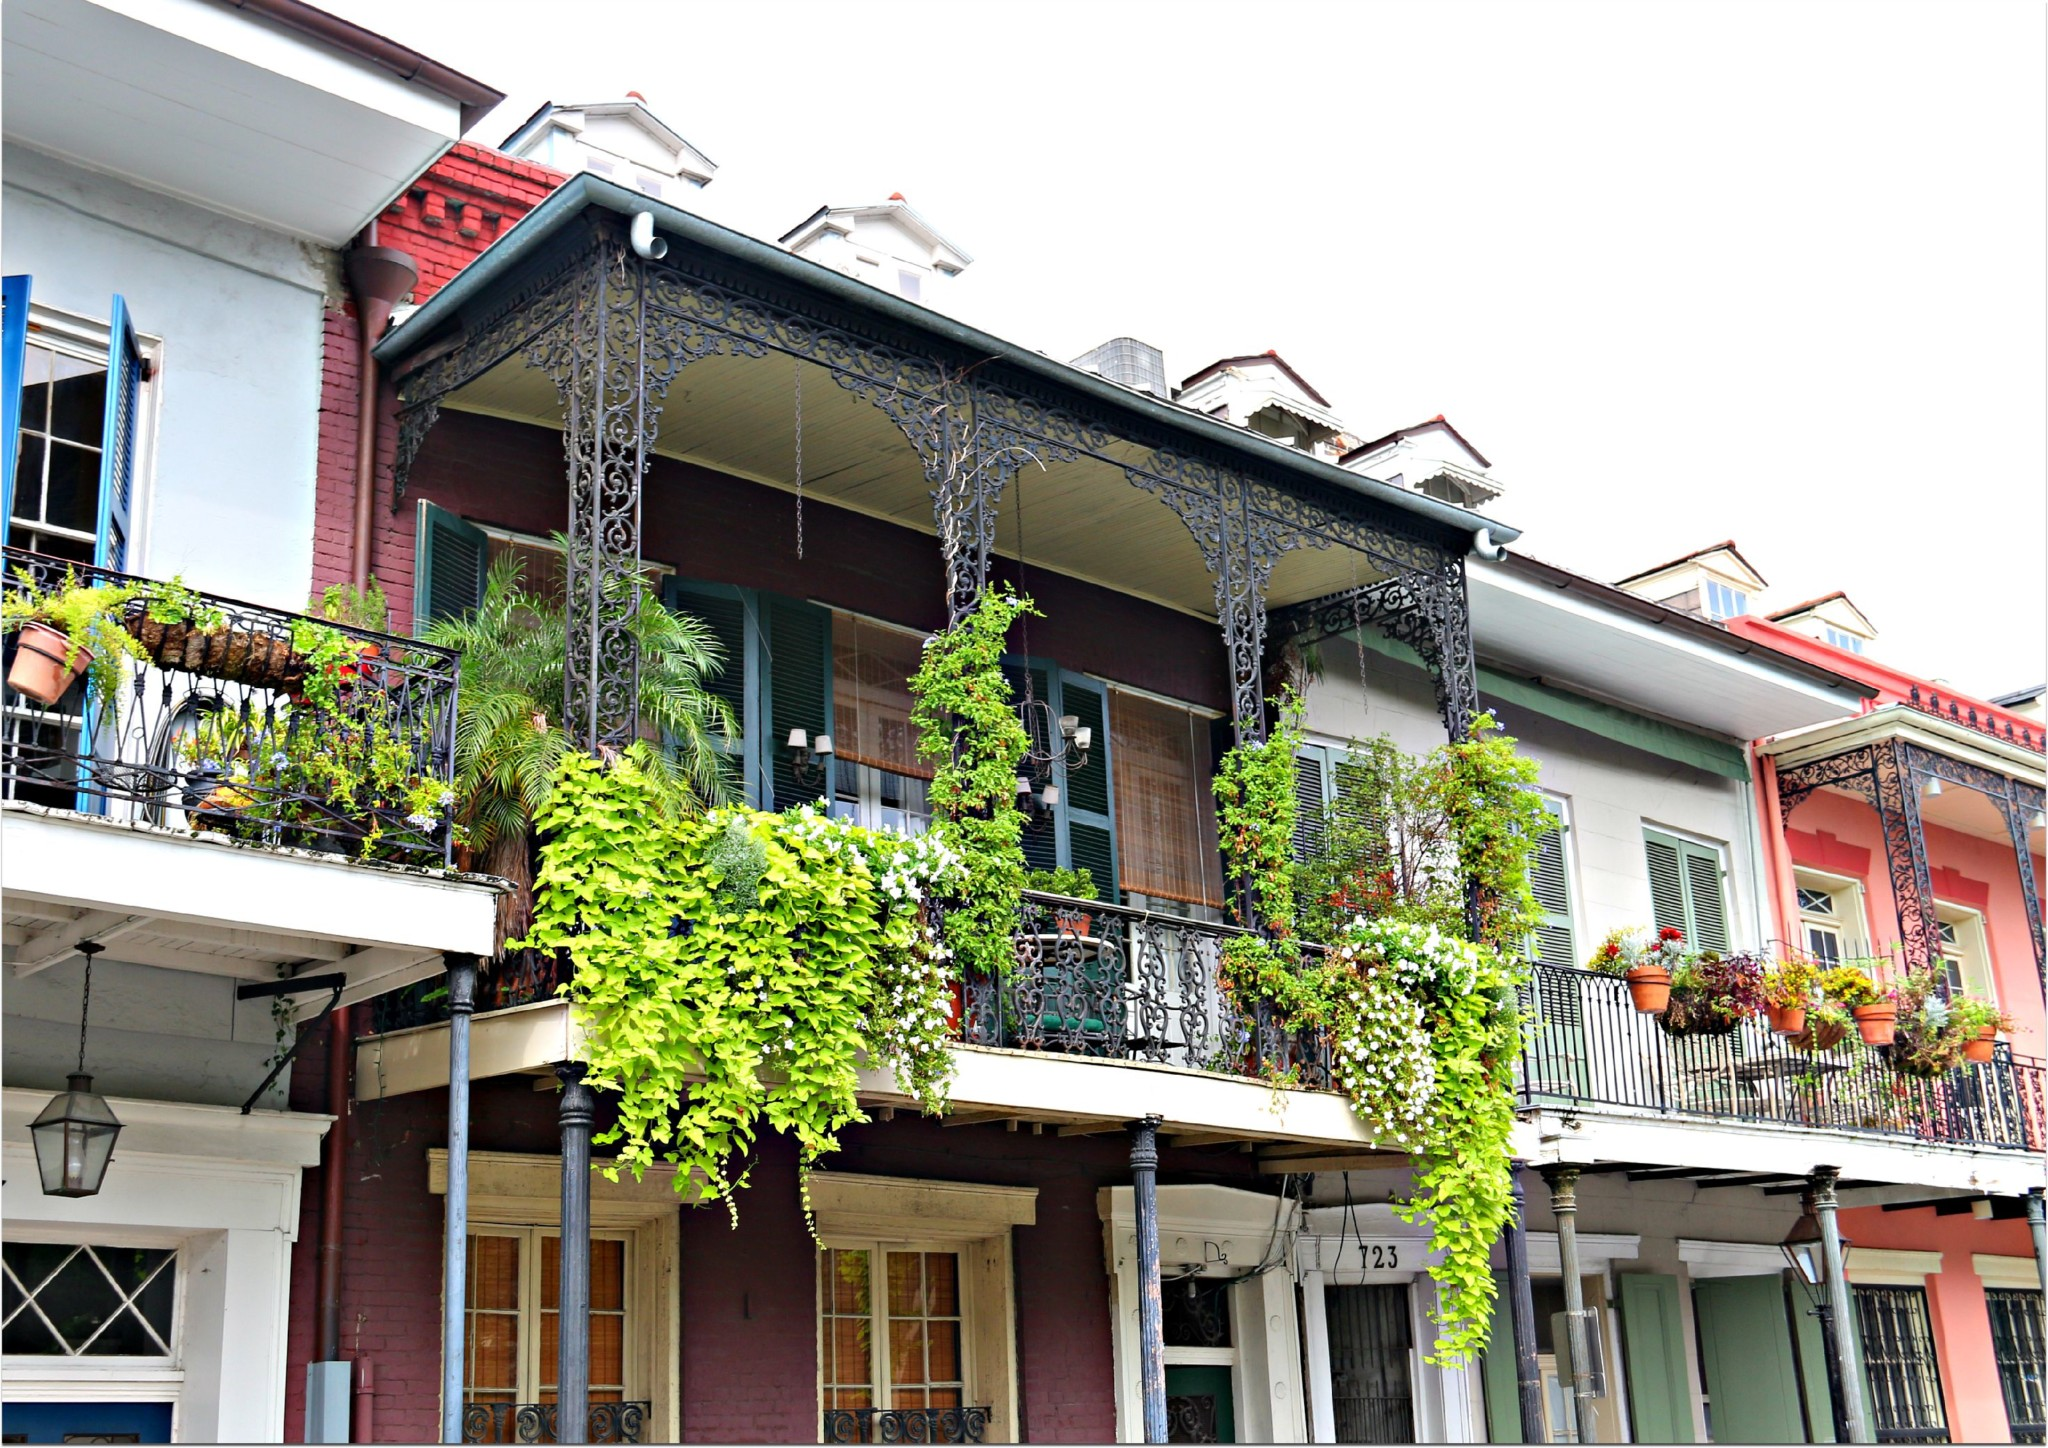 Hanging Balconies in French Quarter